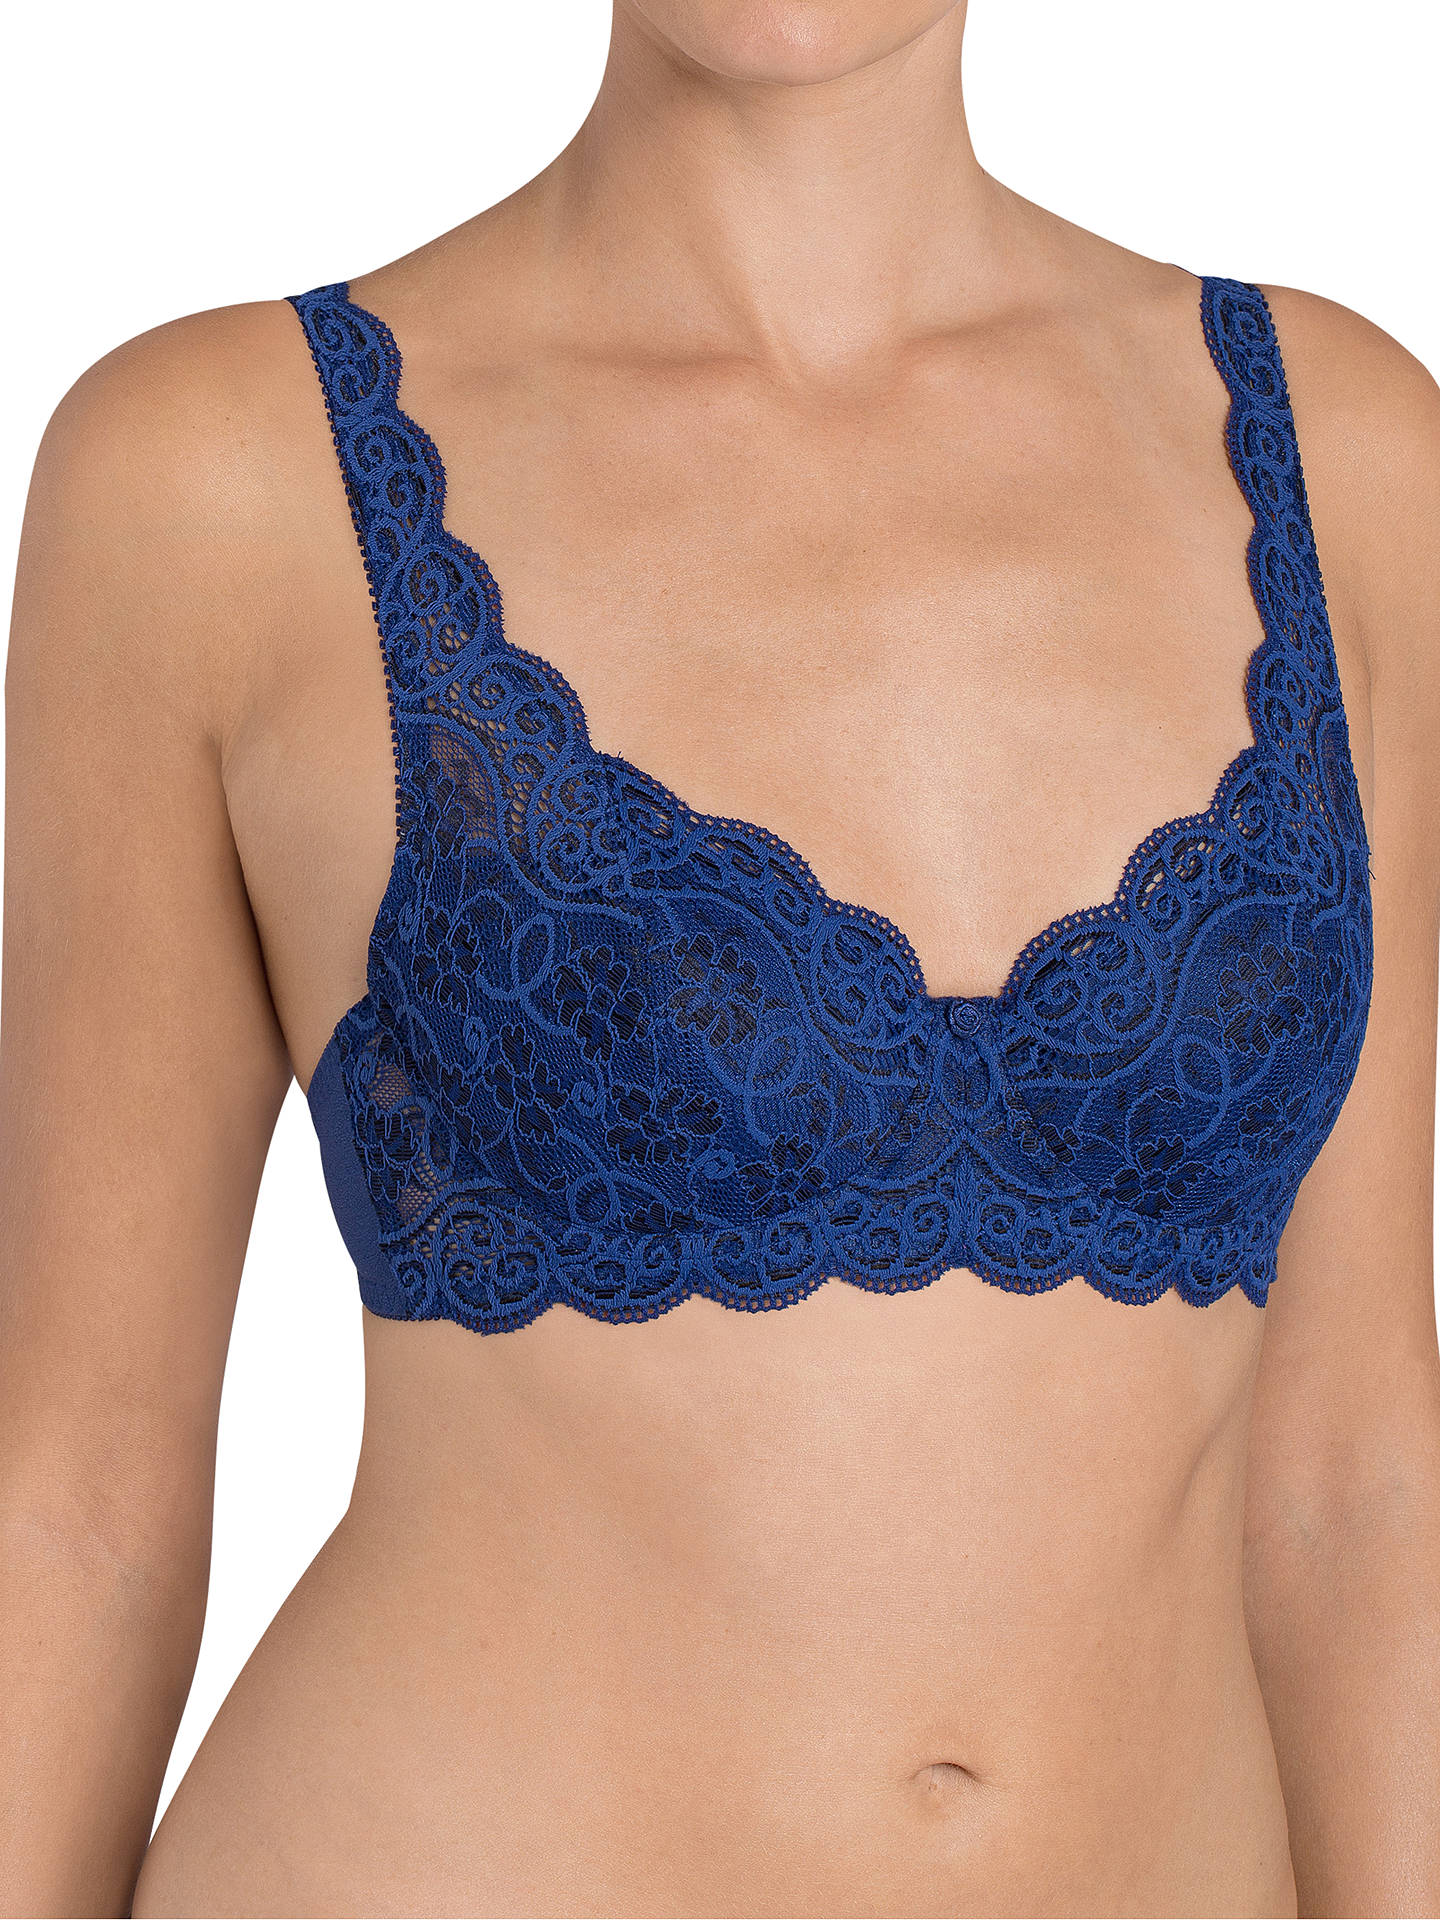 8d60360d37660 BuyTriumph Amourette 300 Padded Underwired Bra